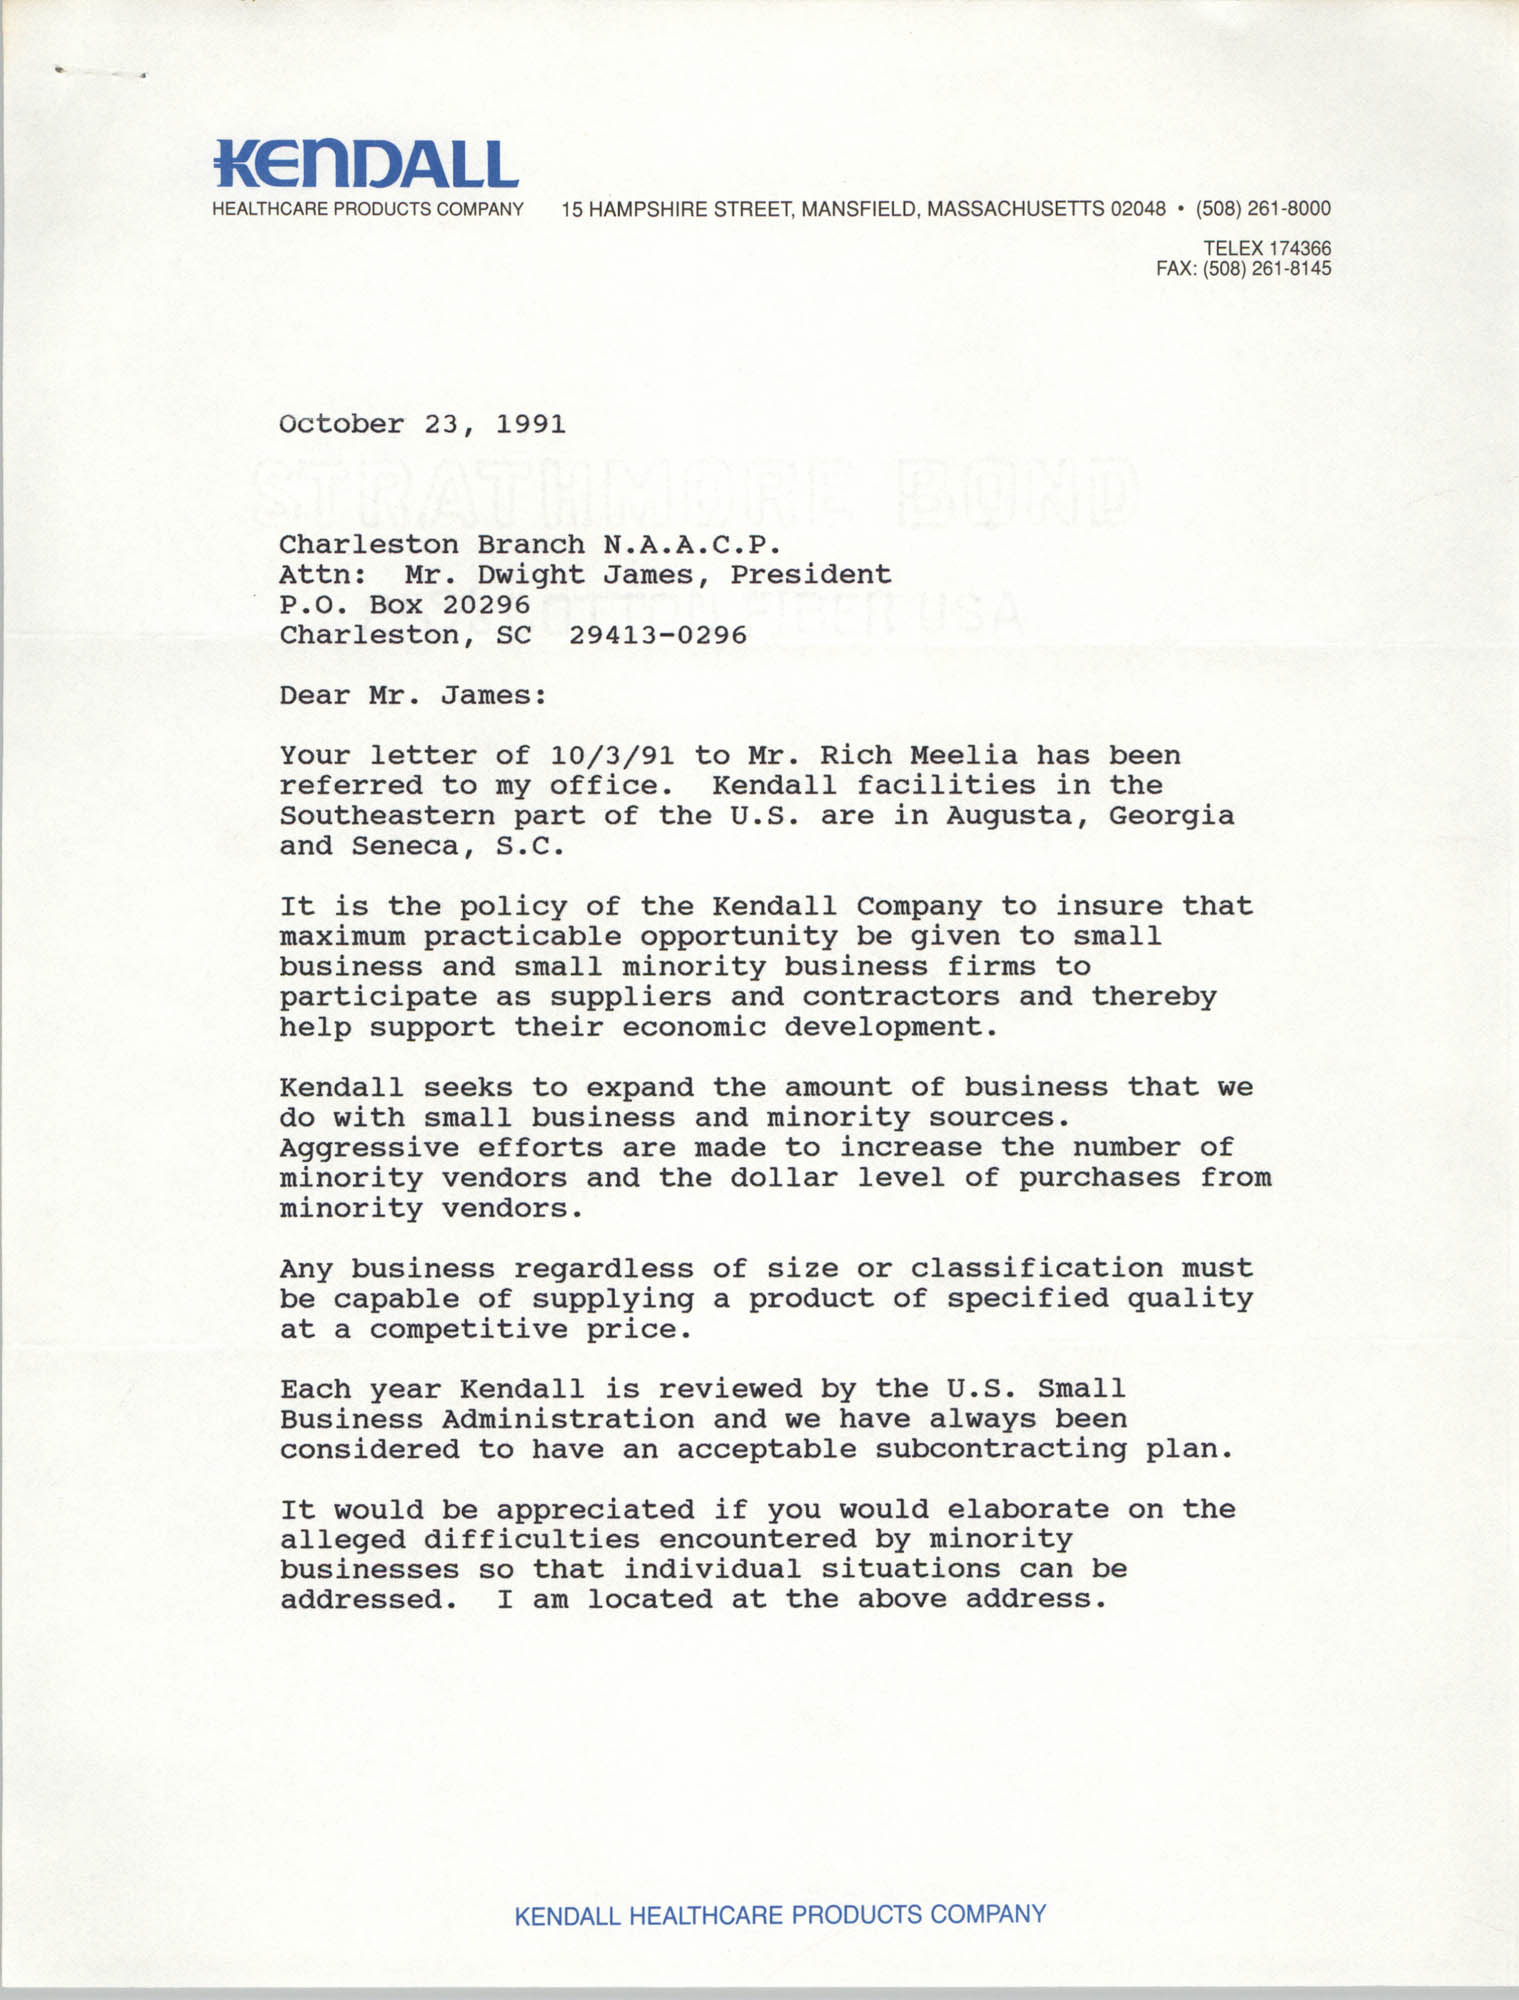 Letter from Heu Sherrerd to Dwight James, October 23, 1991